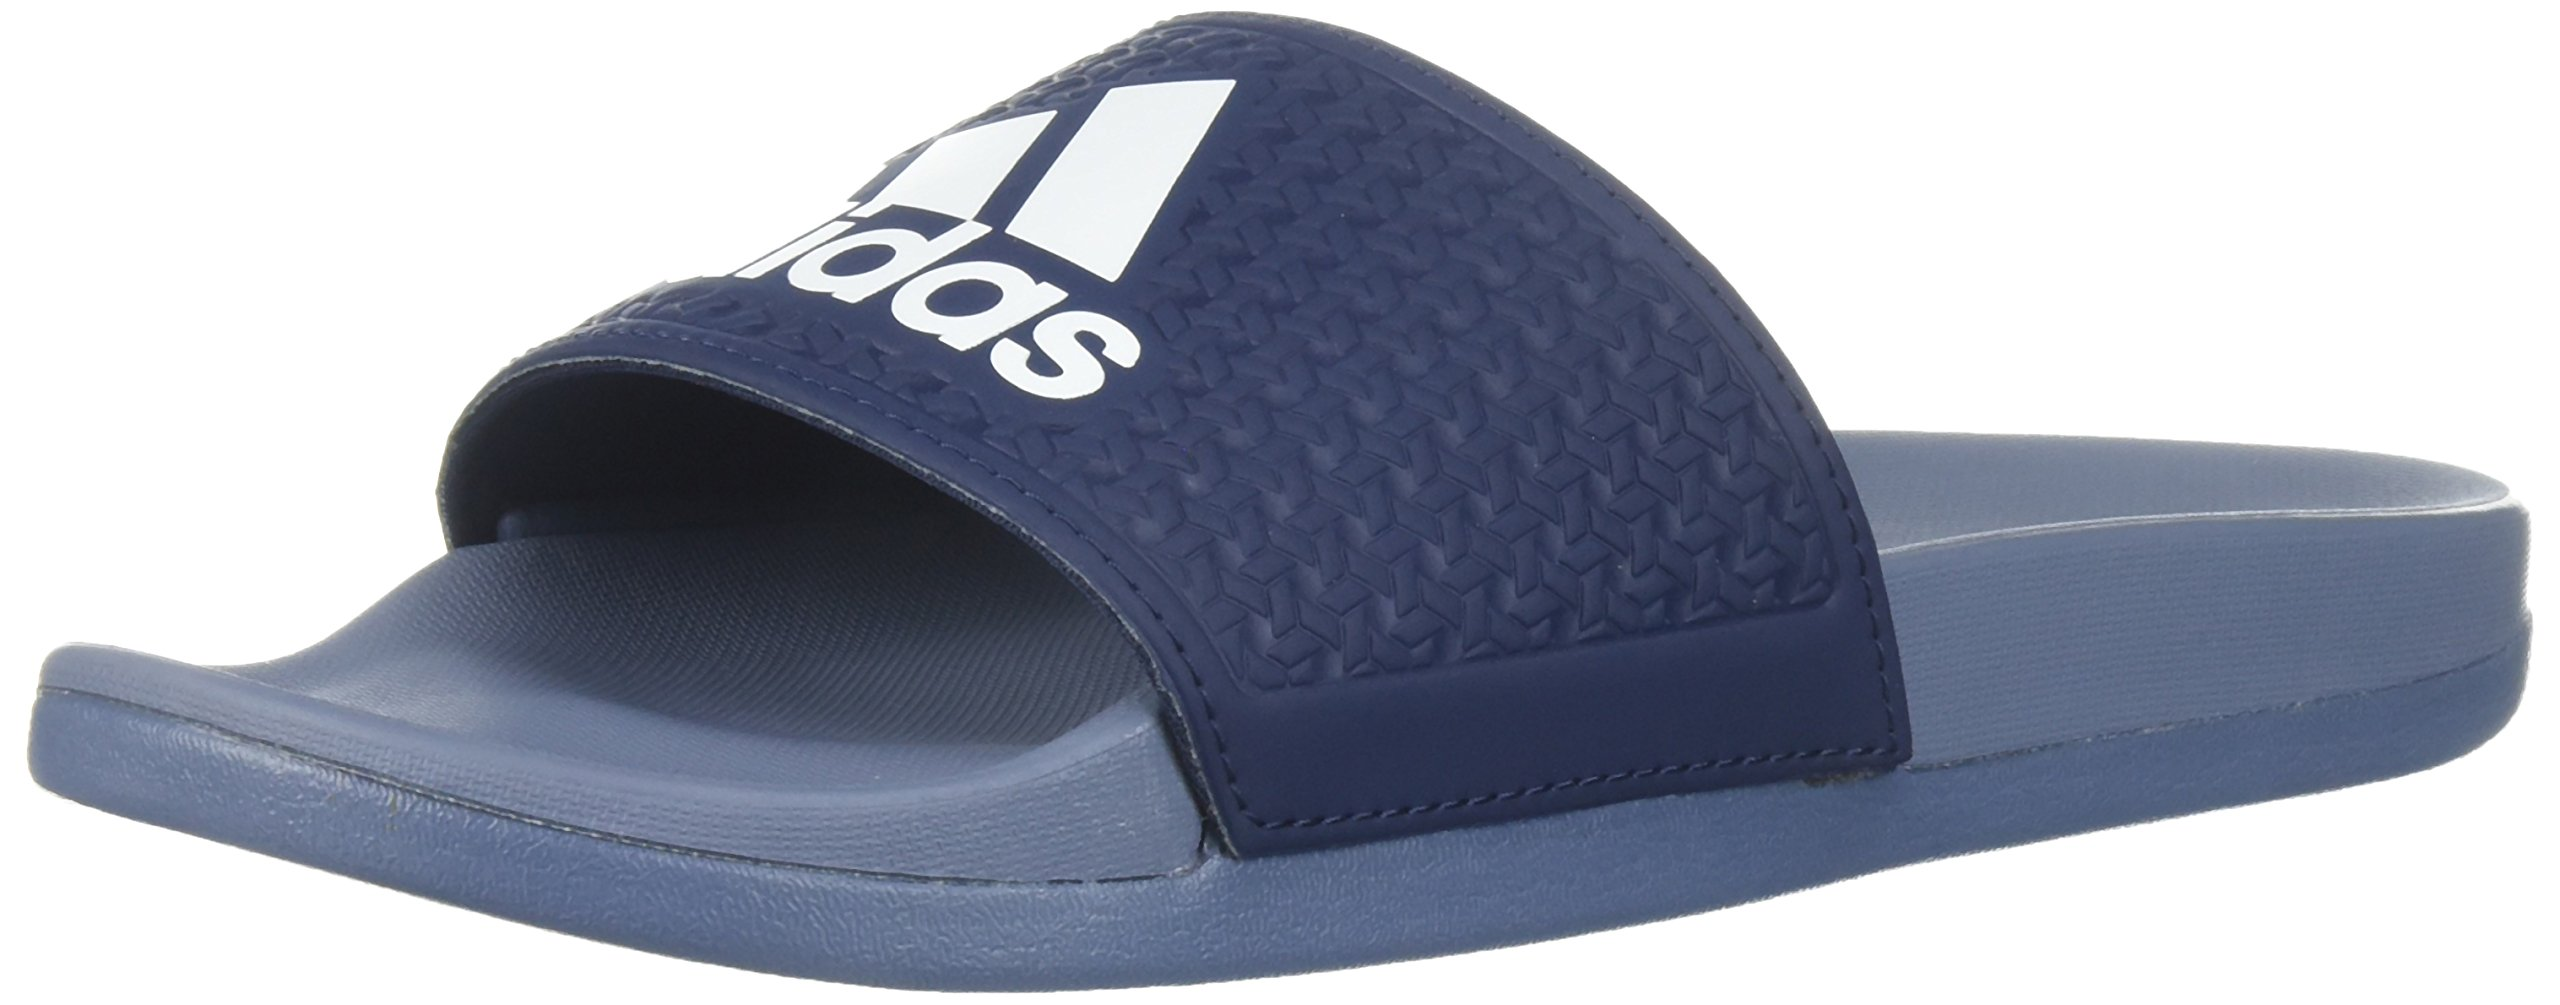 a12cb940fb61 Get Quotations · adidas Kids  Adilette CLF+ K